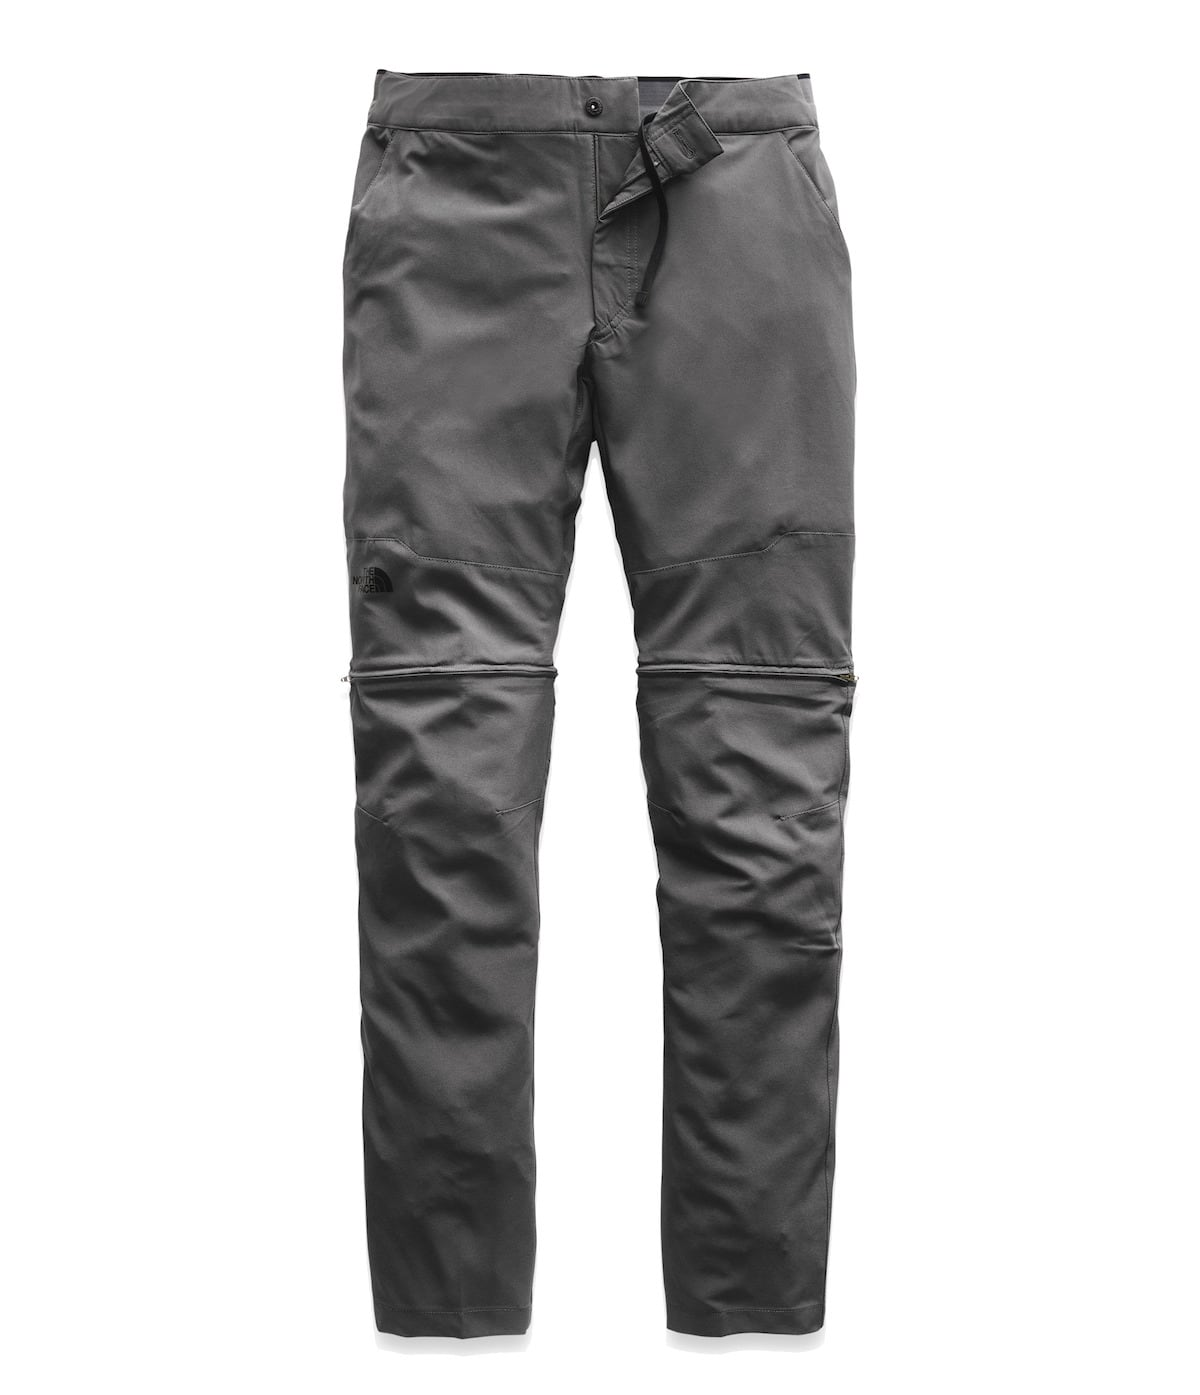 The North Face-Paramount Active Convertible Pant - Men's